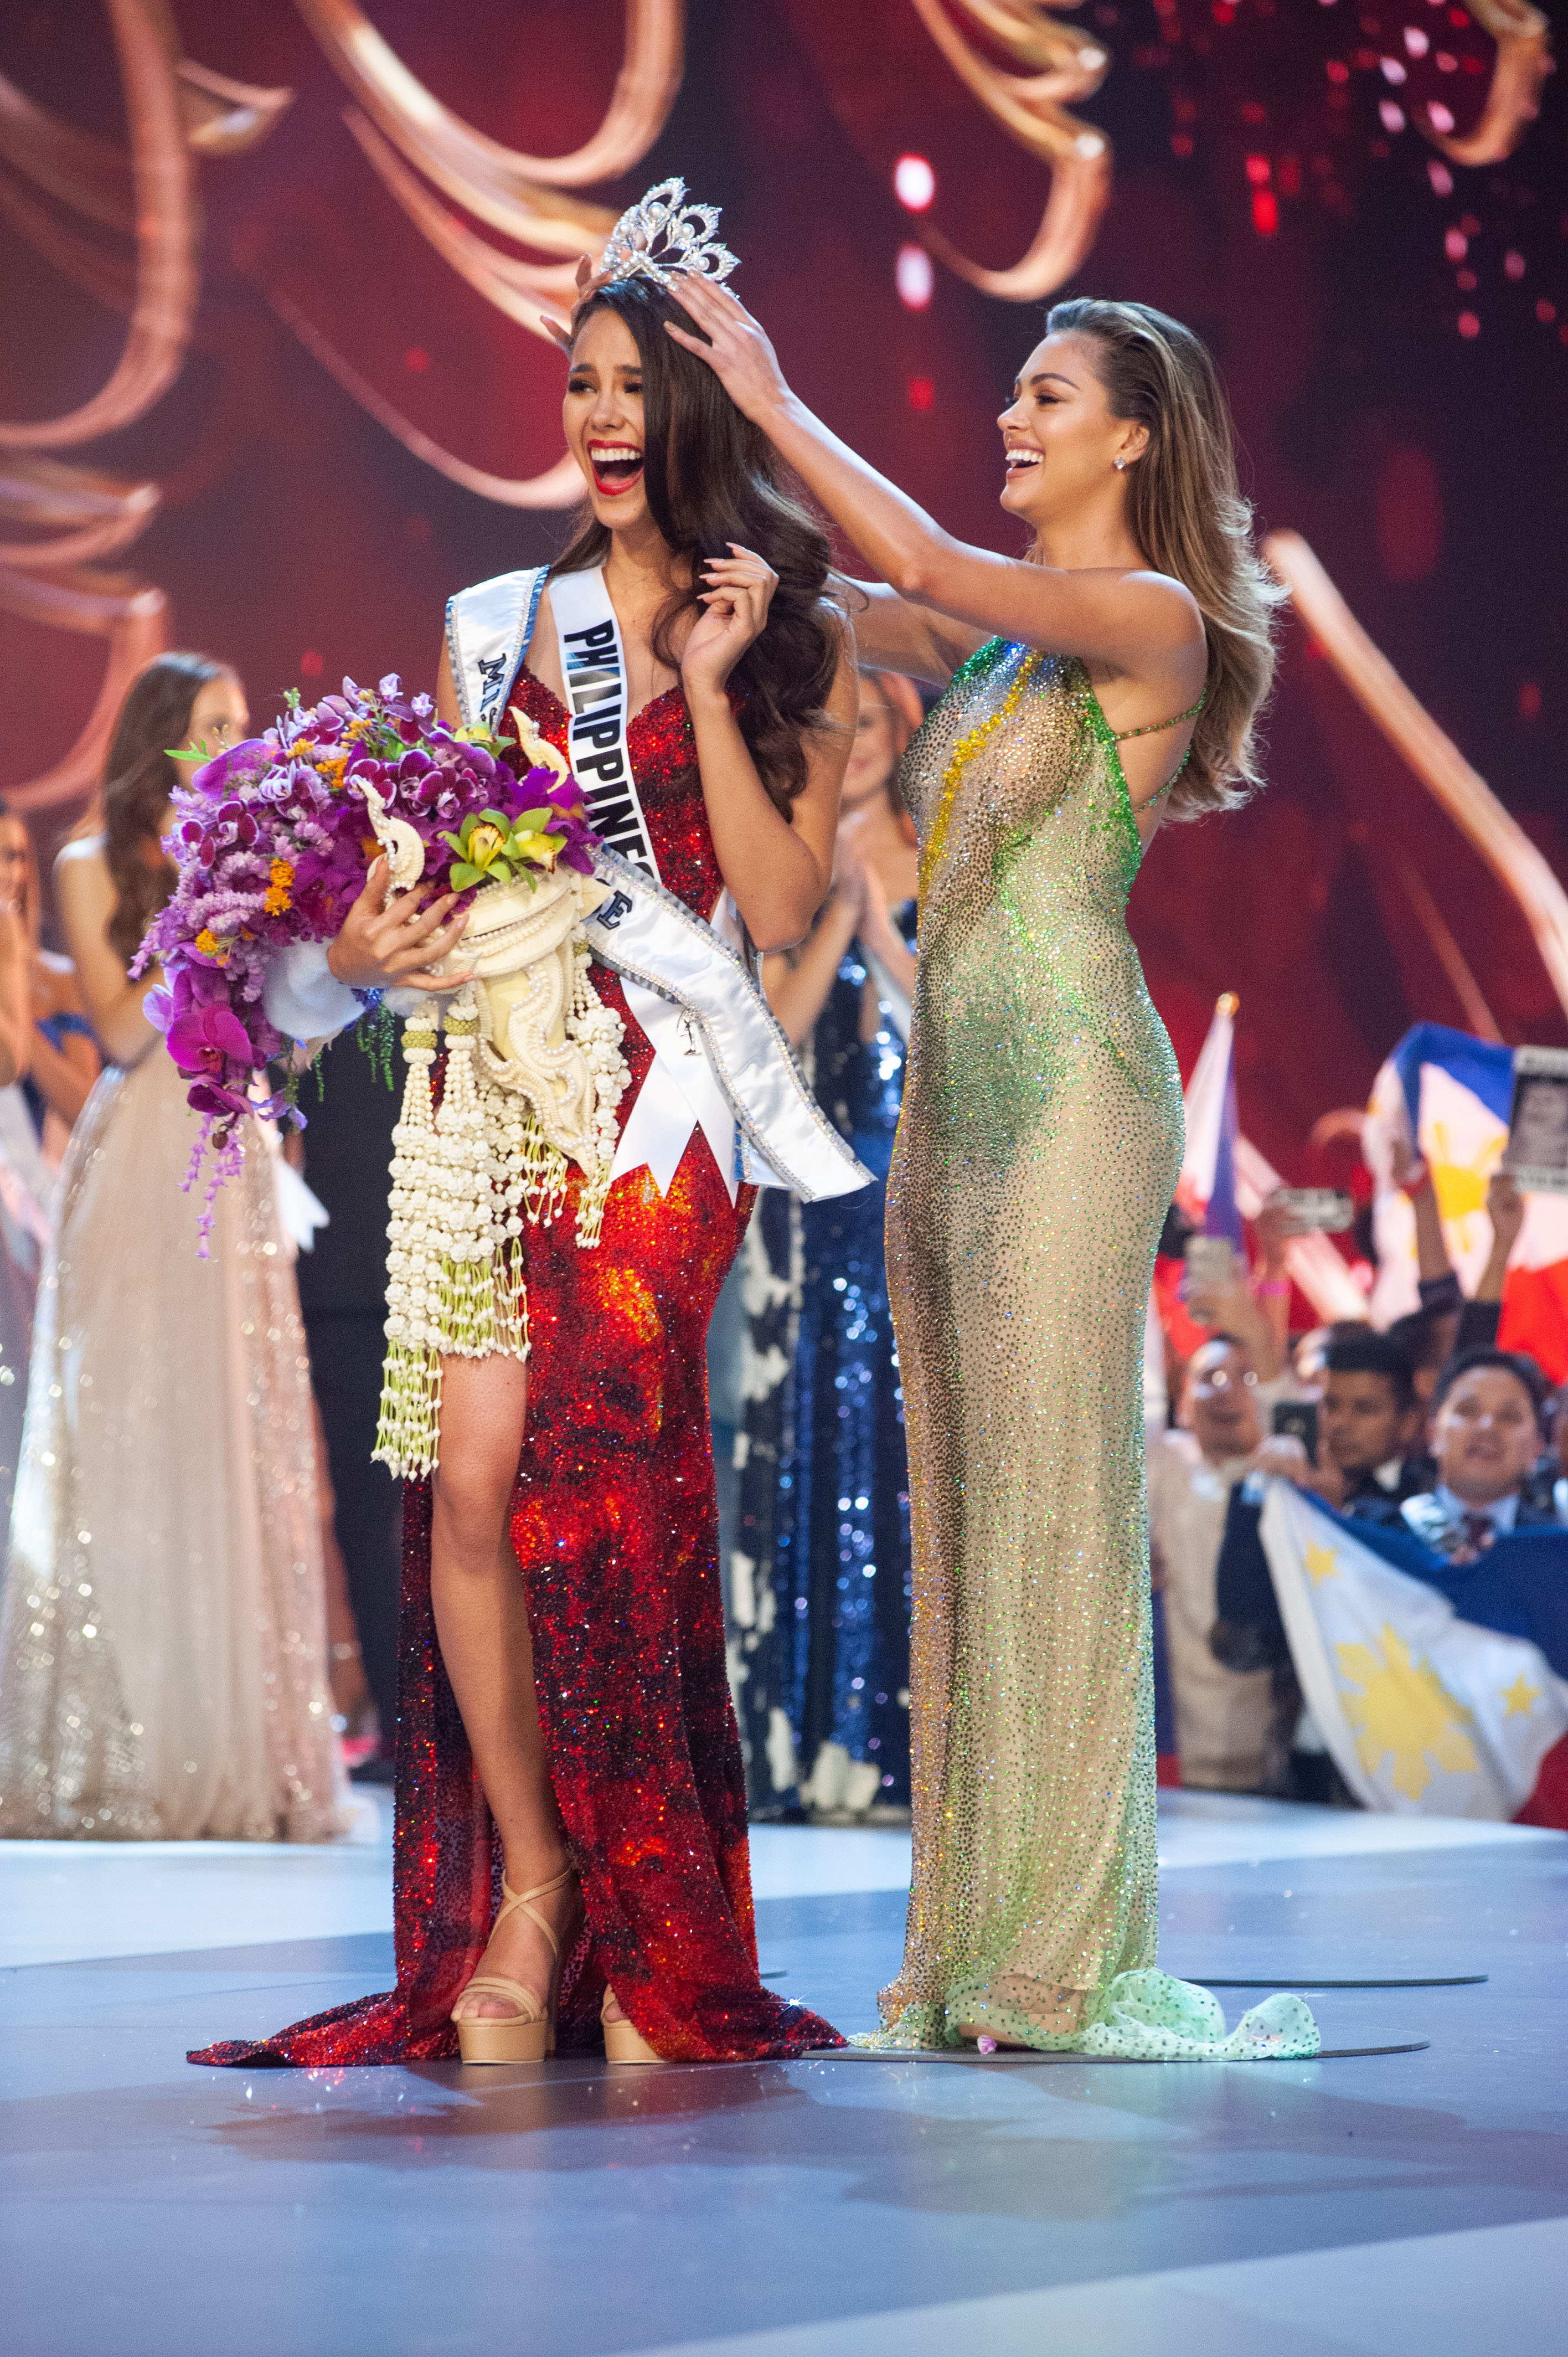 CROWN AT LAST. Catriona Gray, Miss Philippines 2018 is crowned Miss Universe at the conclusion of the three-hour special programming event on FOX. Photo by The Miss Universe Organization